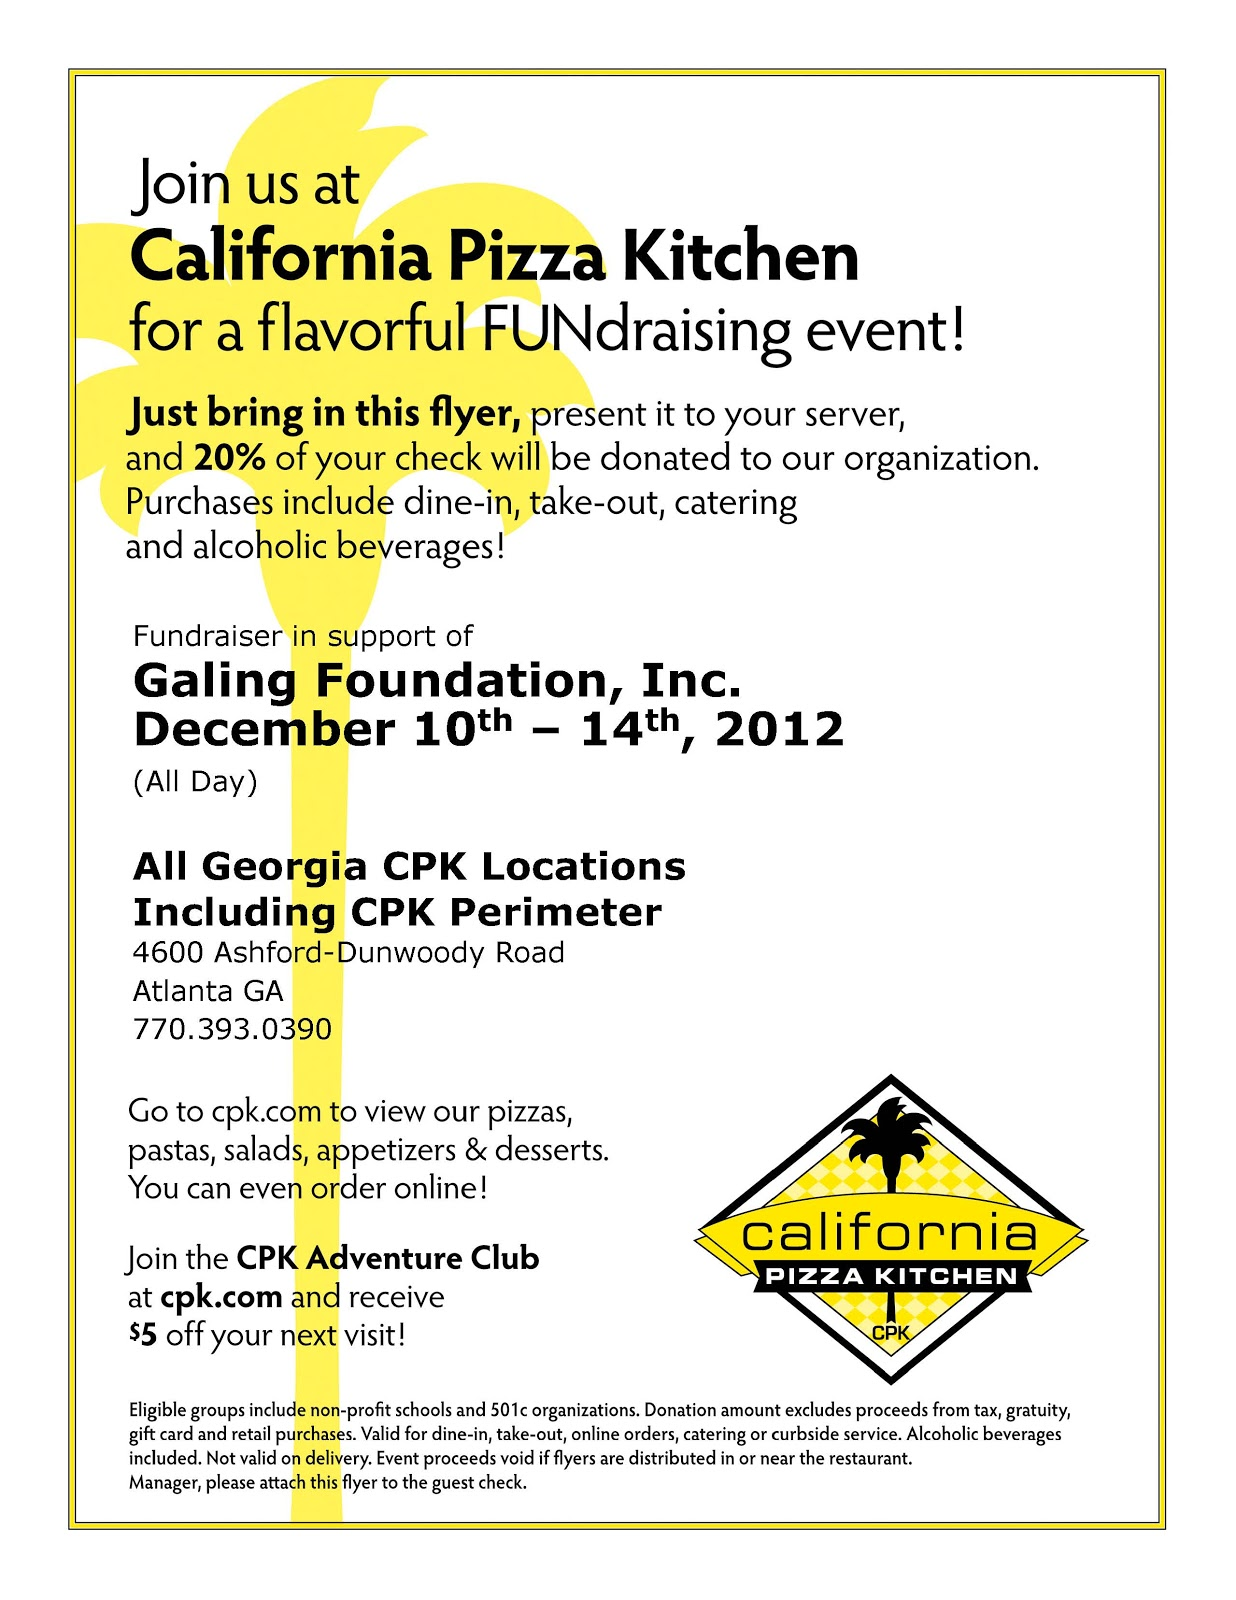 Galing (Great) News: Dec. 10-14: California Pizza Kitchen ...